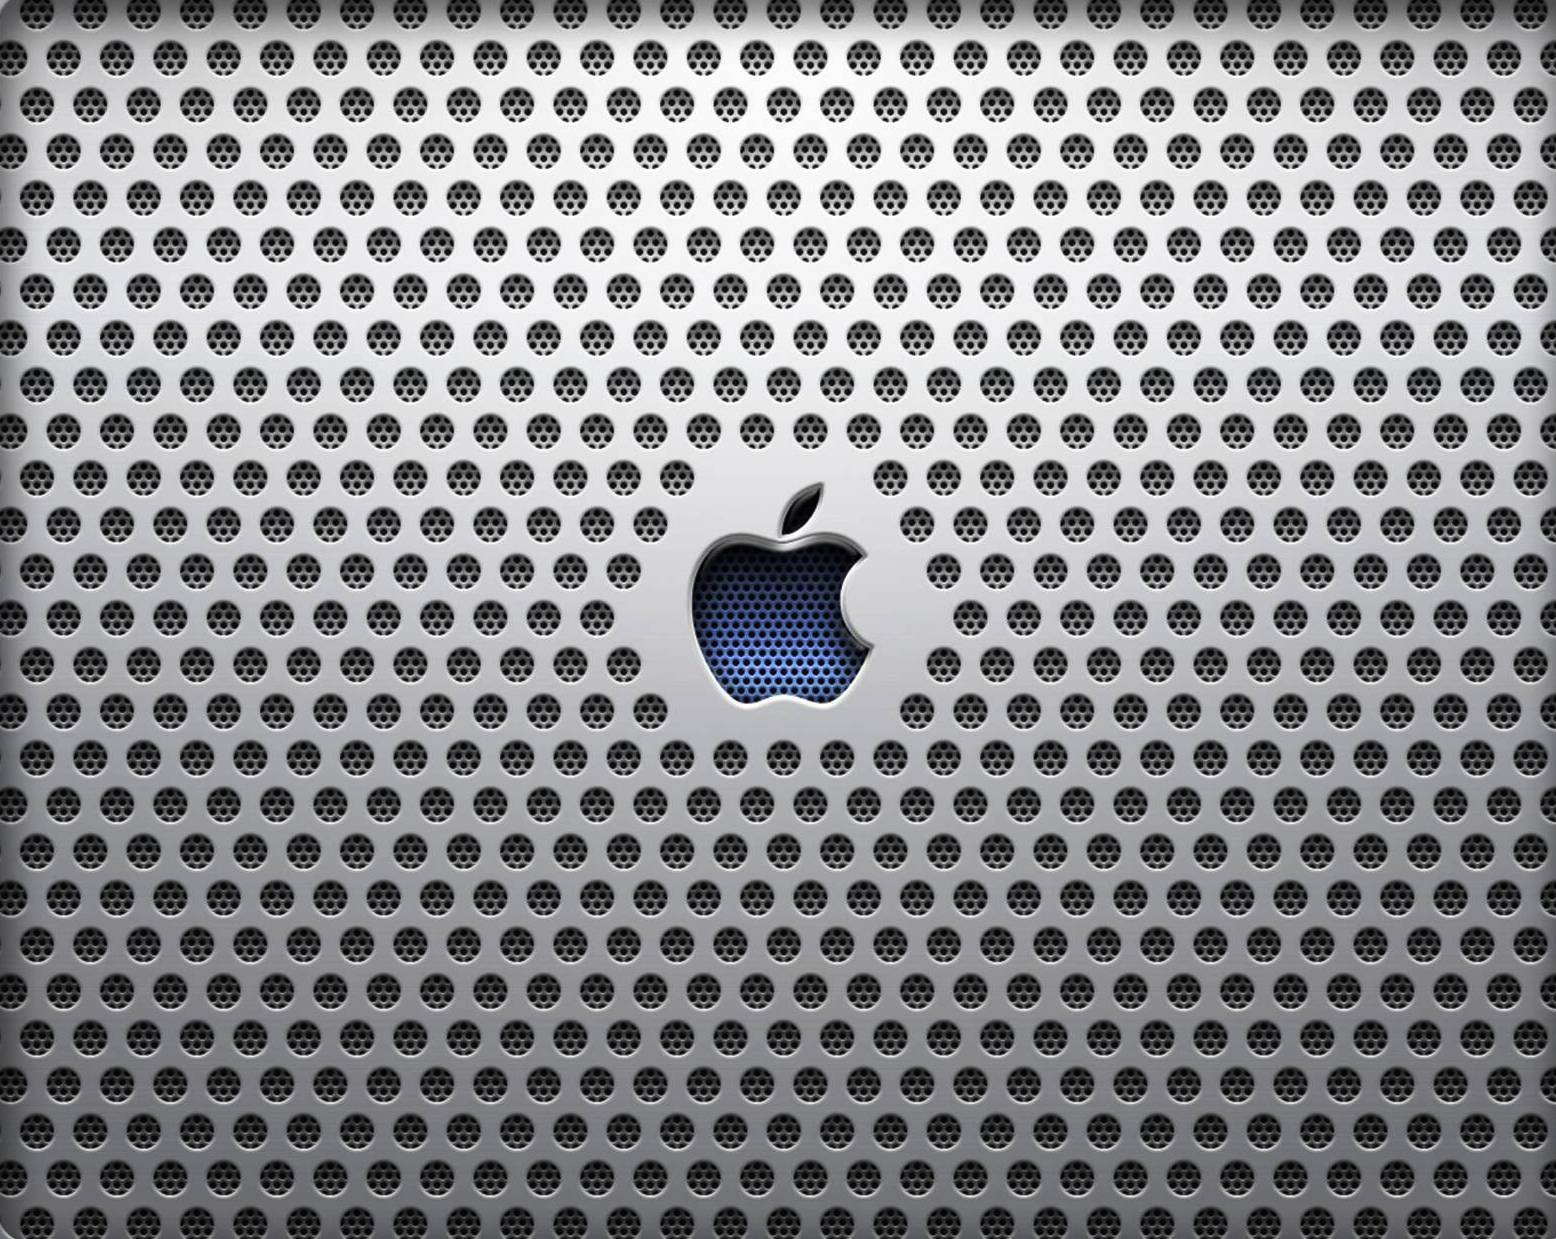 apple aluminum wallpapers - 1556x1239 - 342407